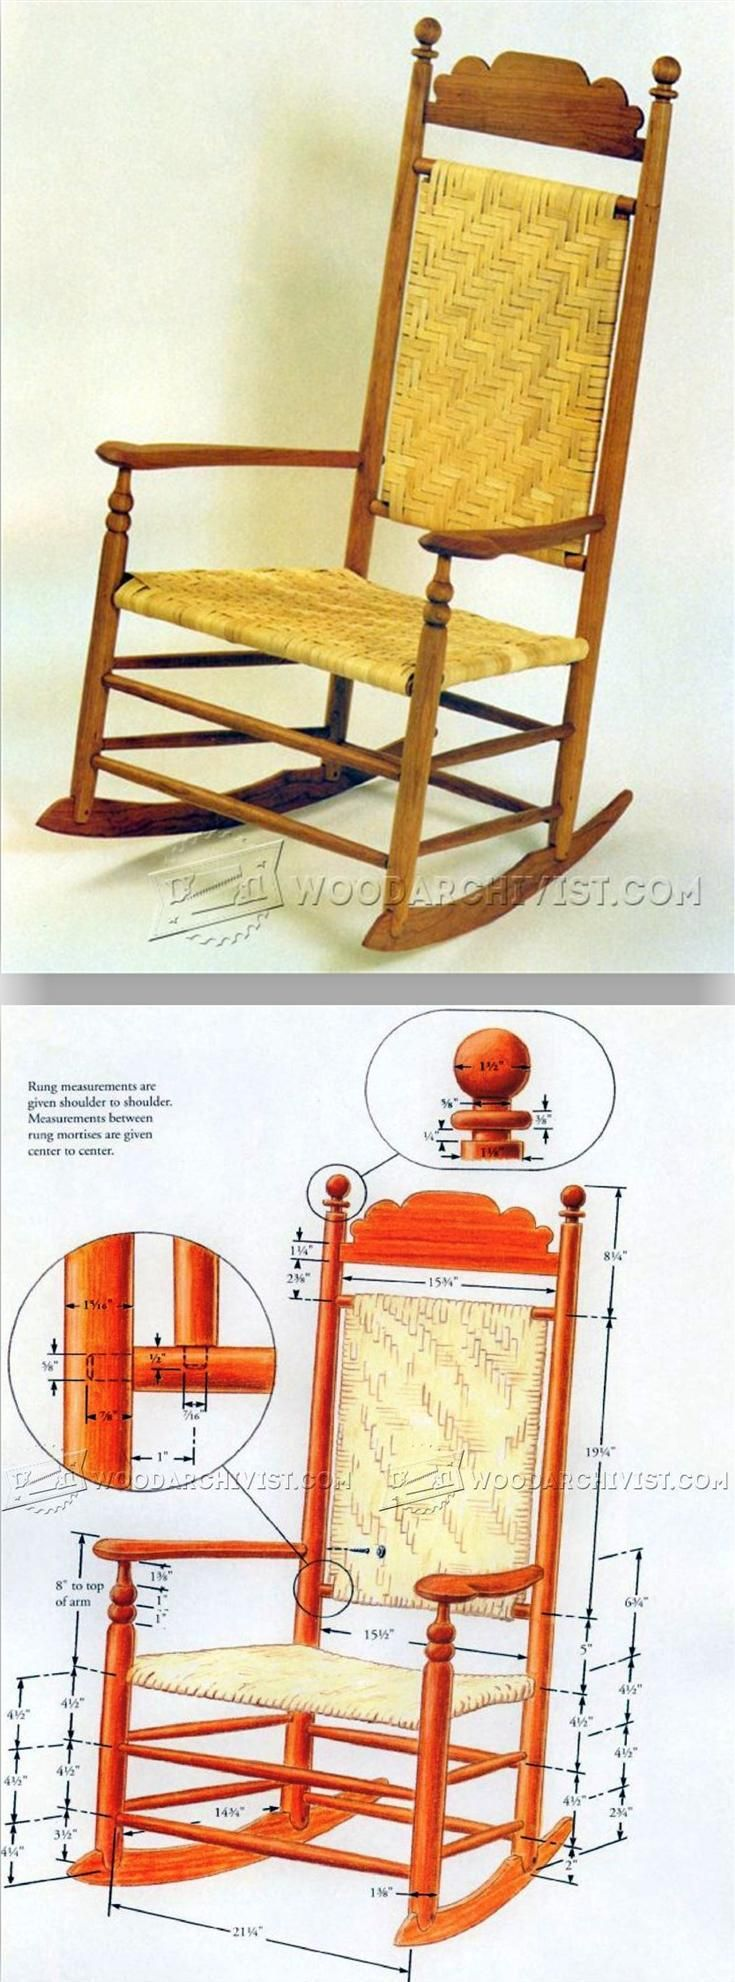 Wood Rocking Chair Plans - Furniture Plans and Projects   WoodArchivist.com